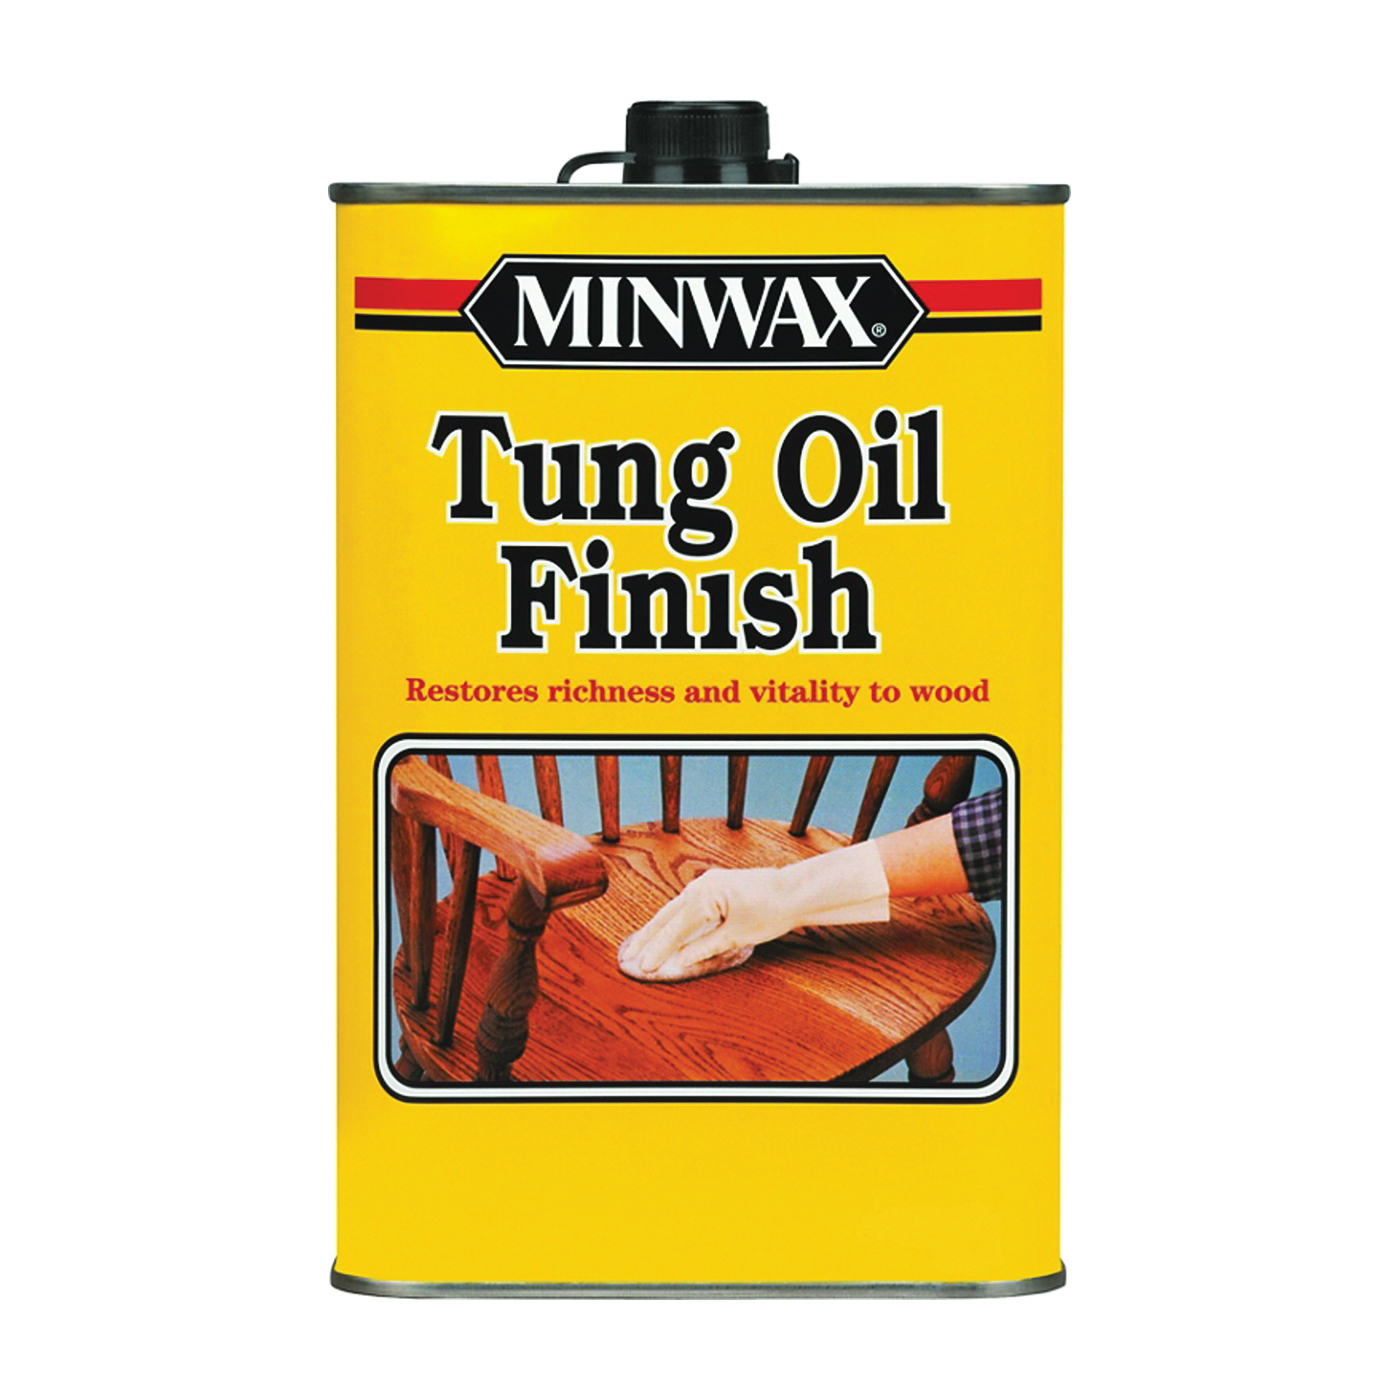 Picture of Minwax 47500000 Tung Oil Finish, Liquid, 1 pt, Can